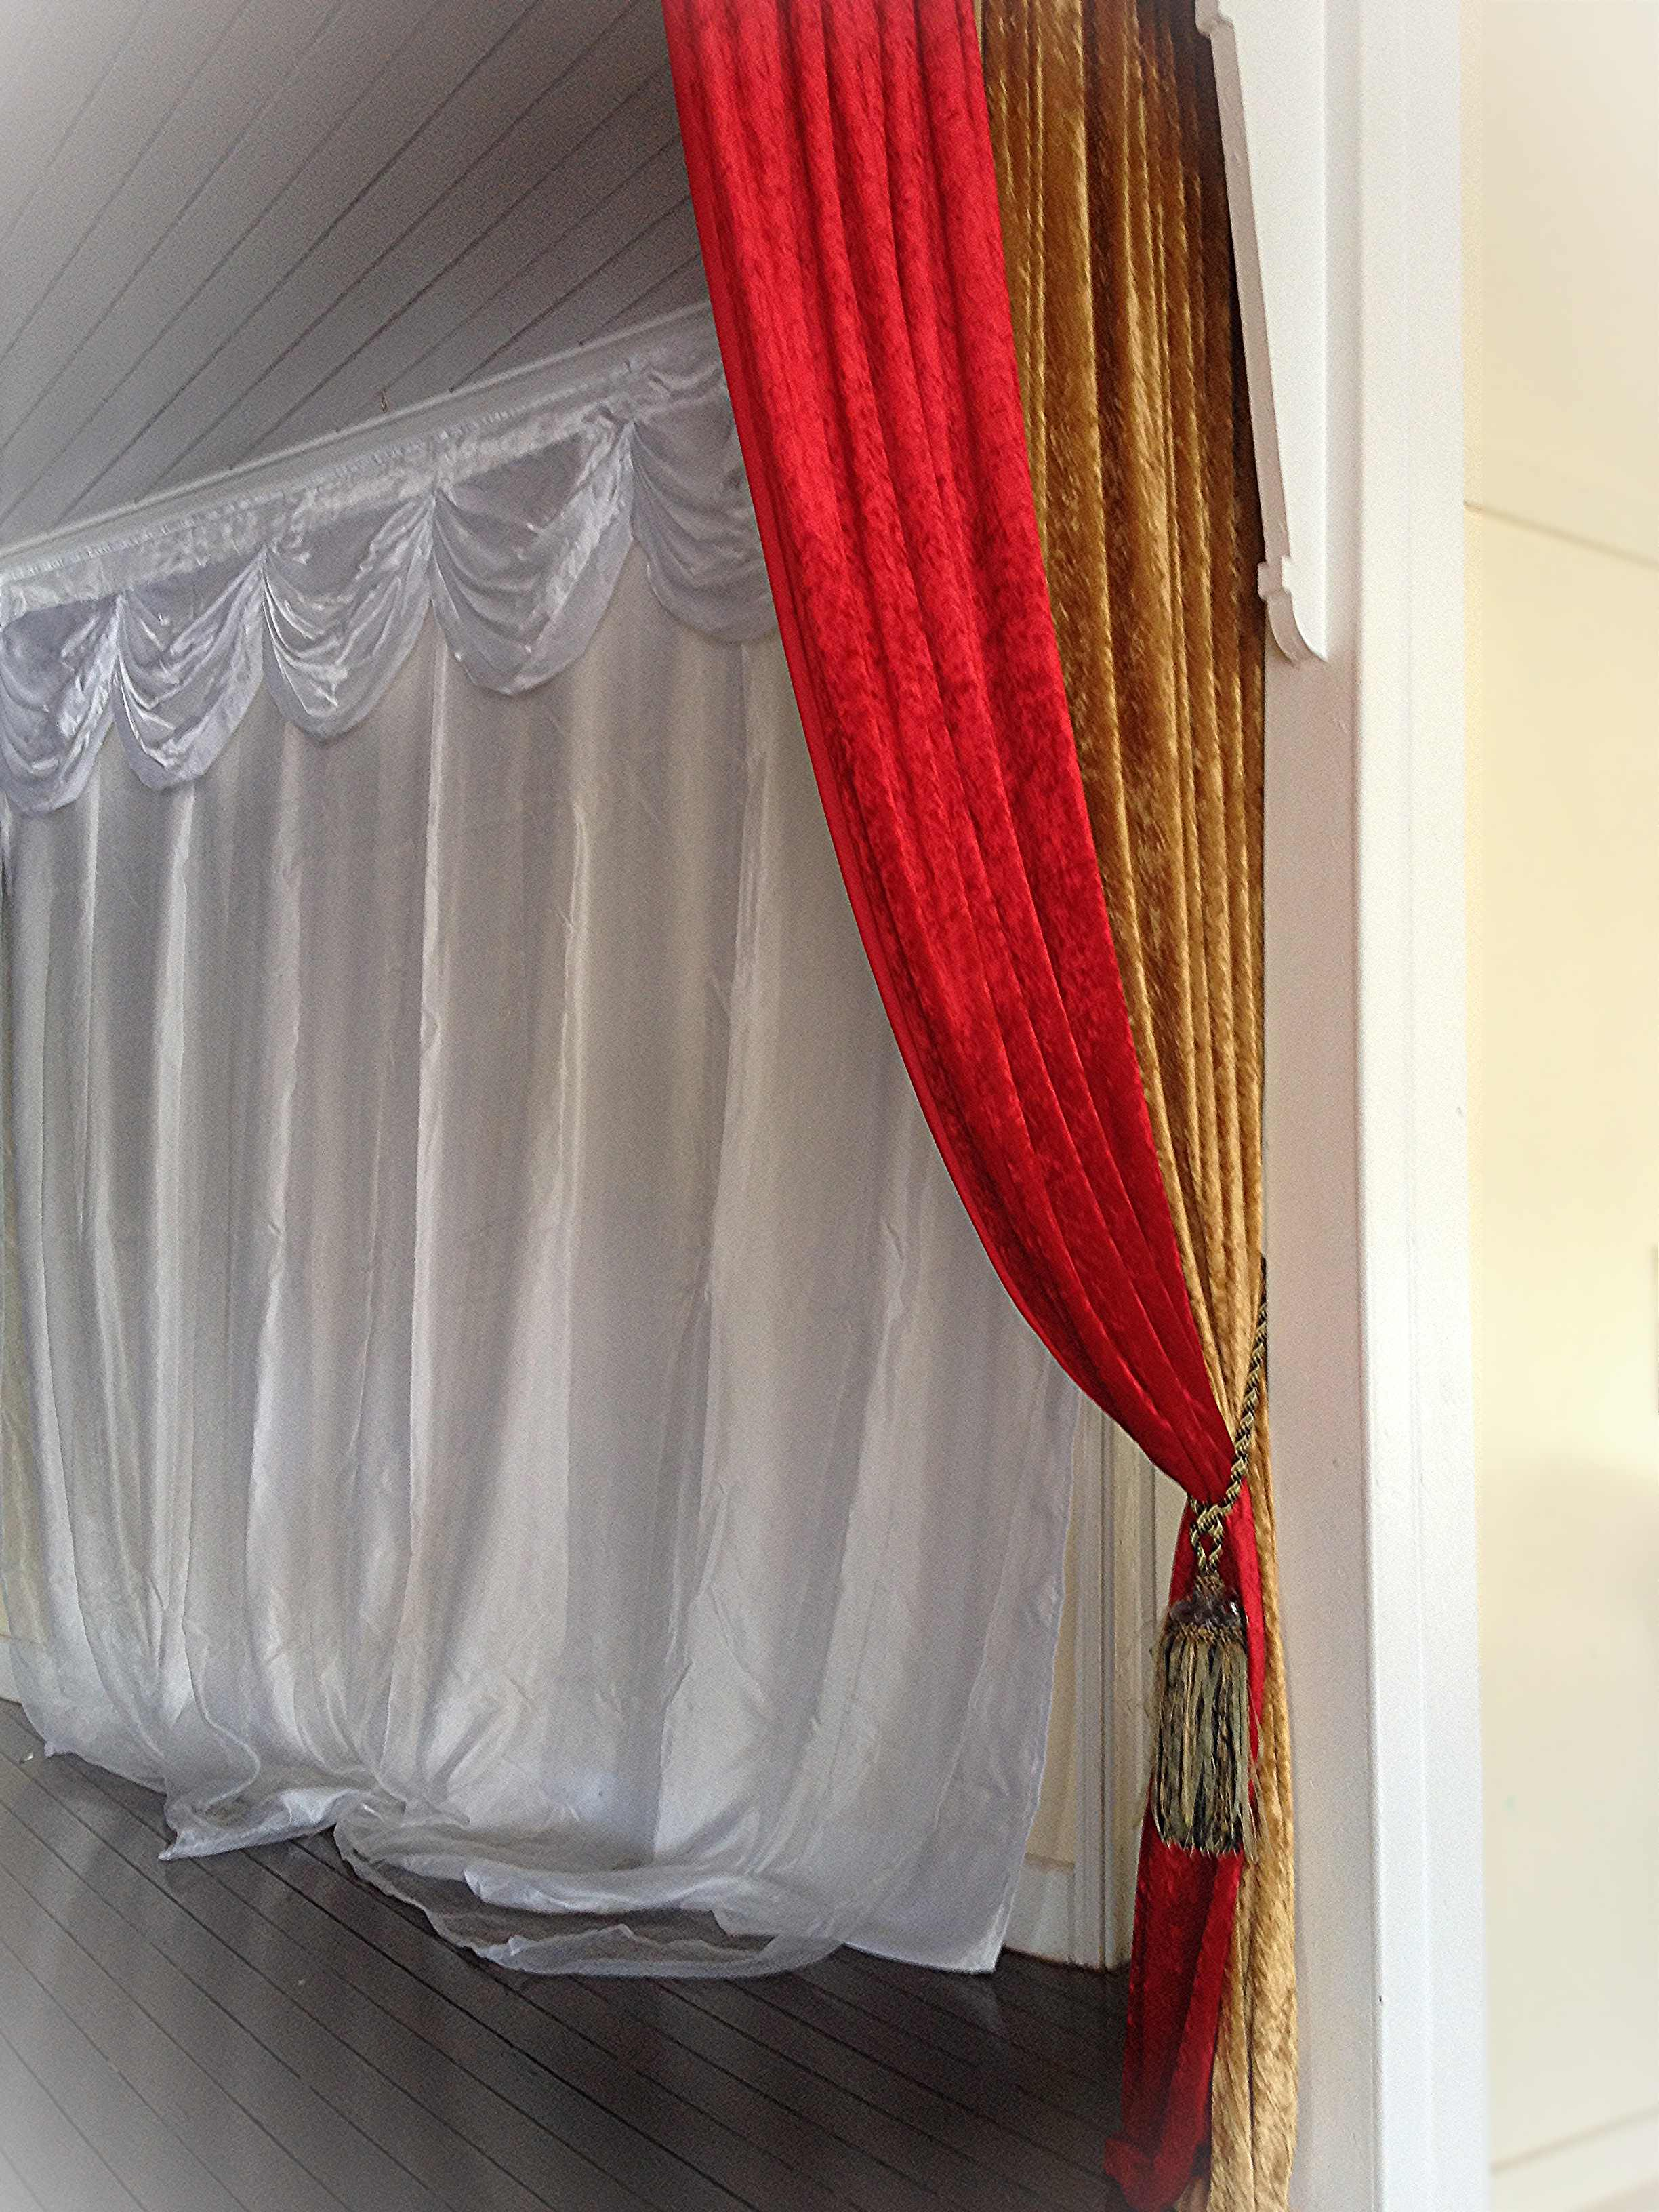 Draping with colour